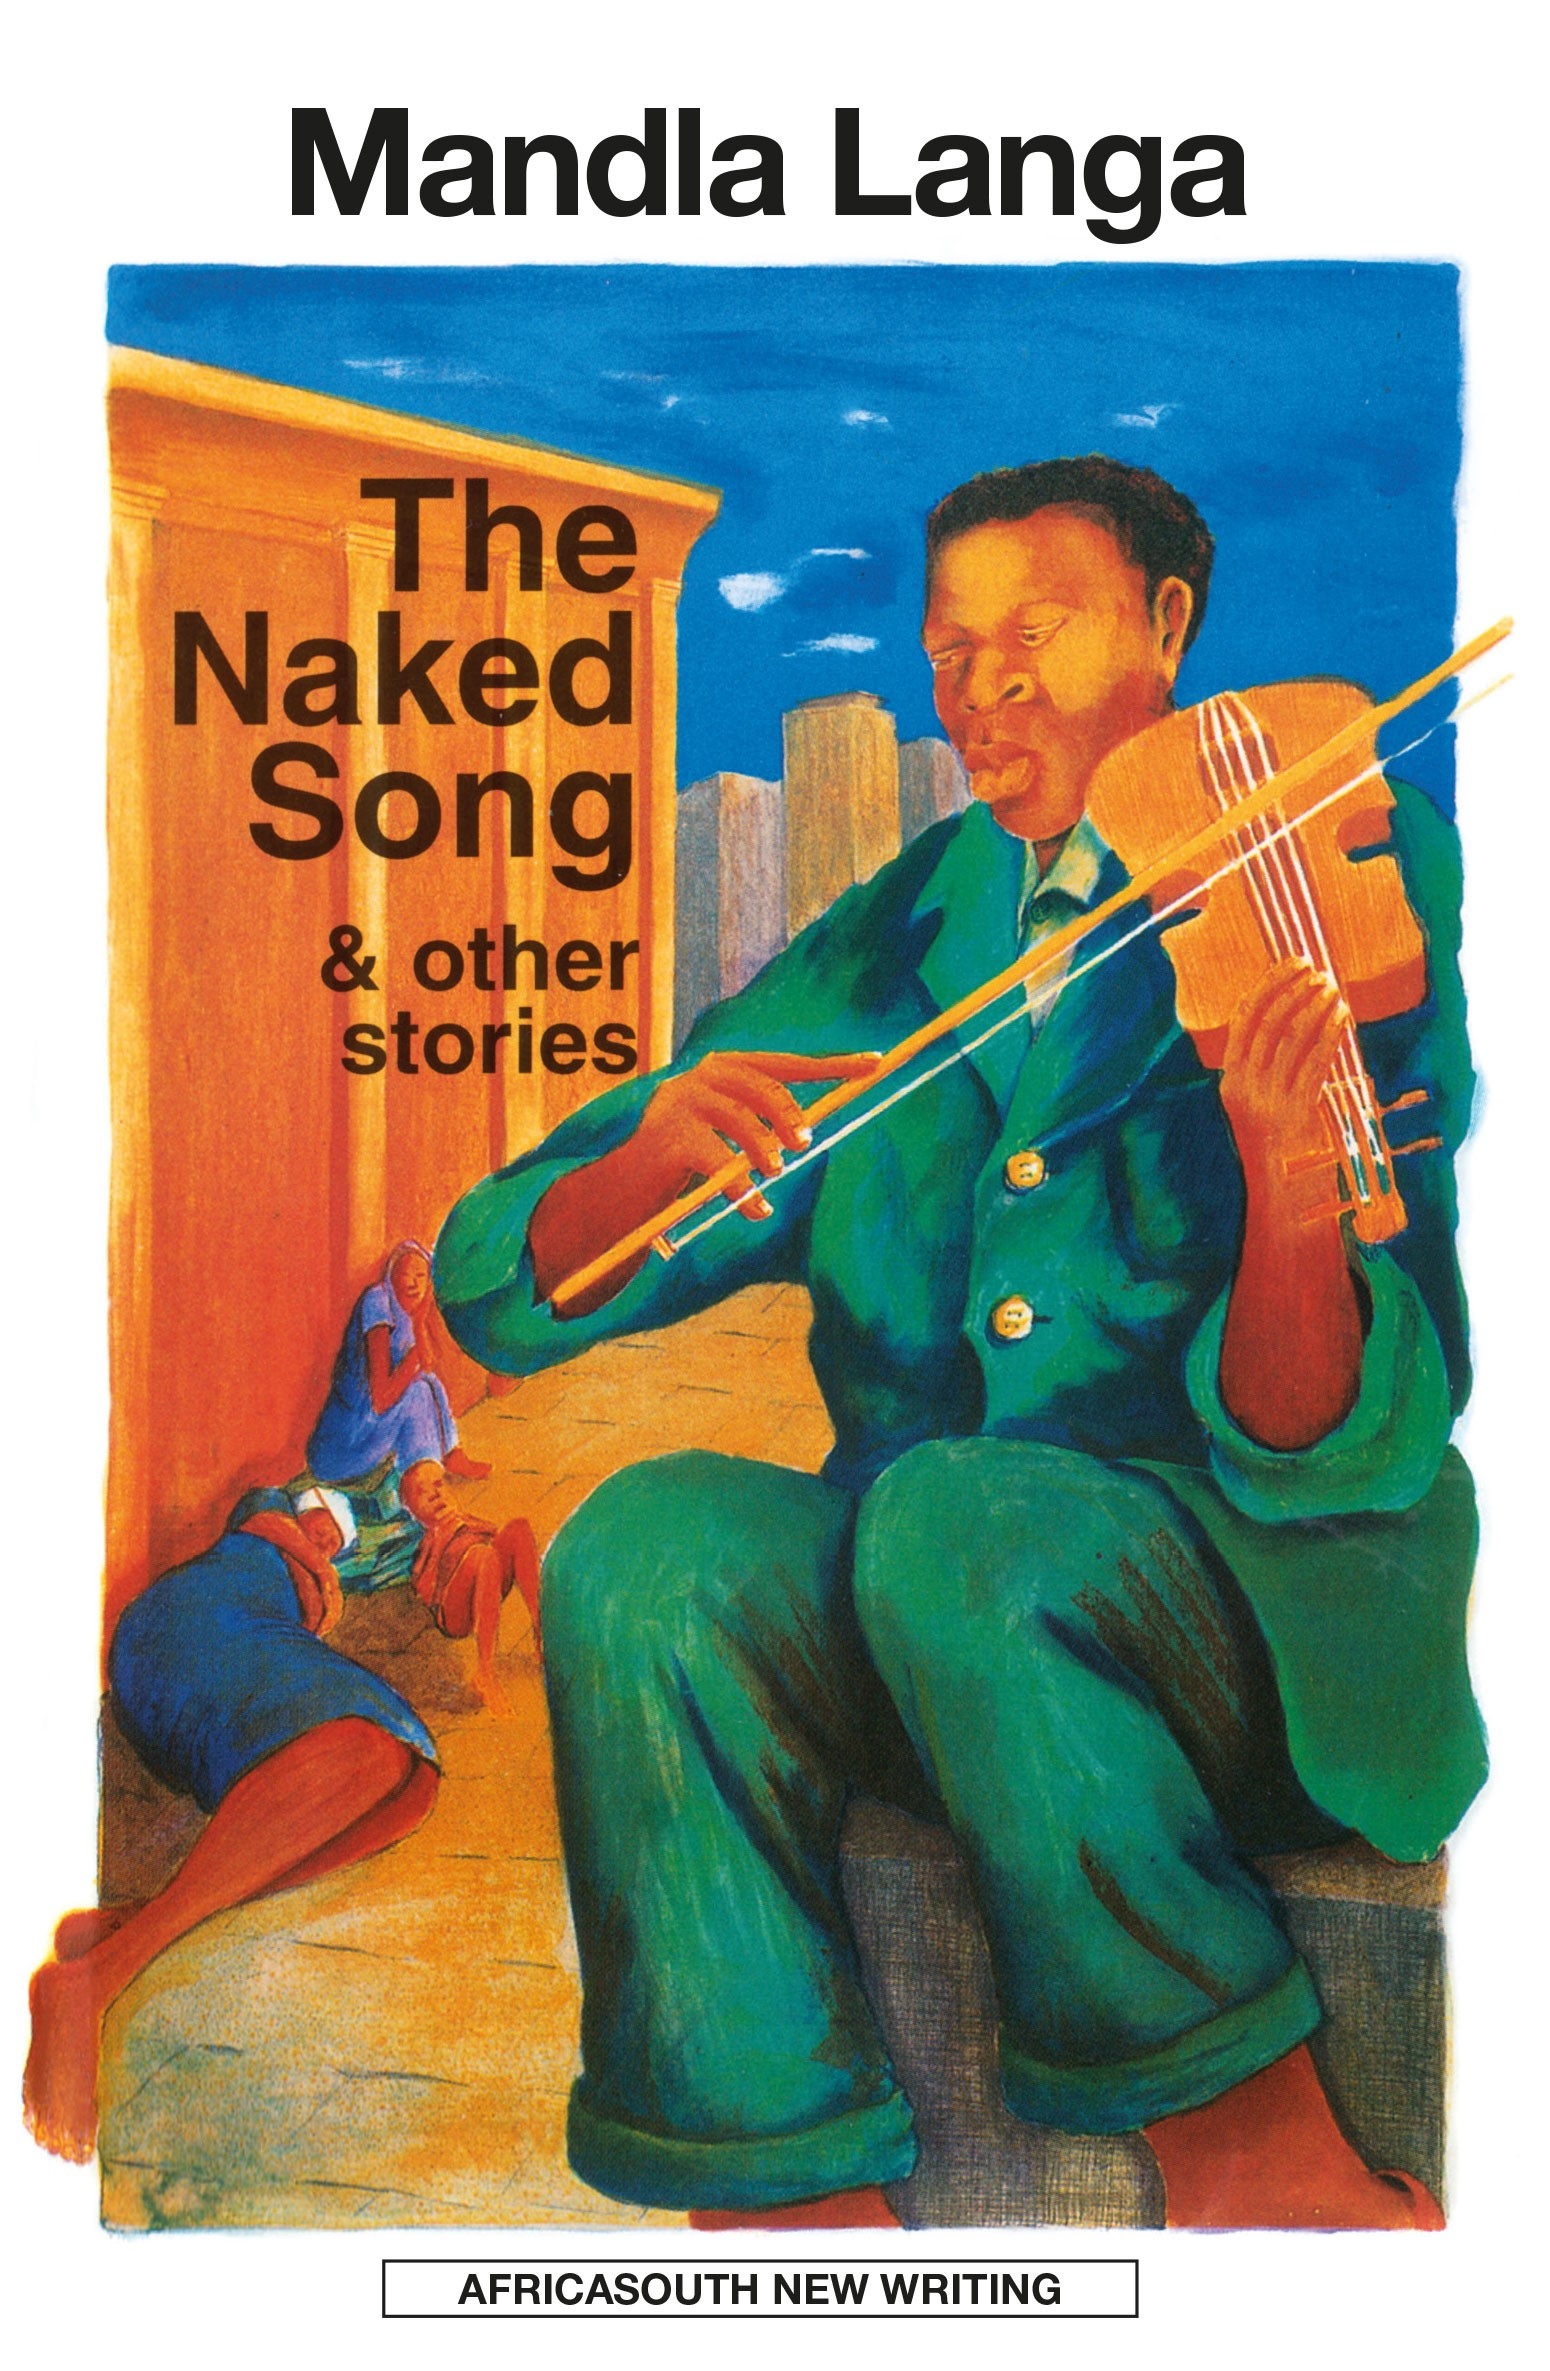 The Naked Song & other stories - Mandla Langa